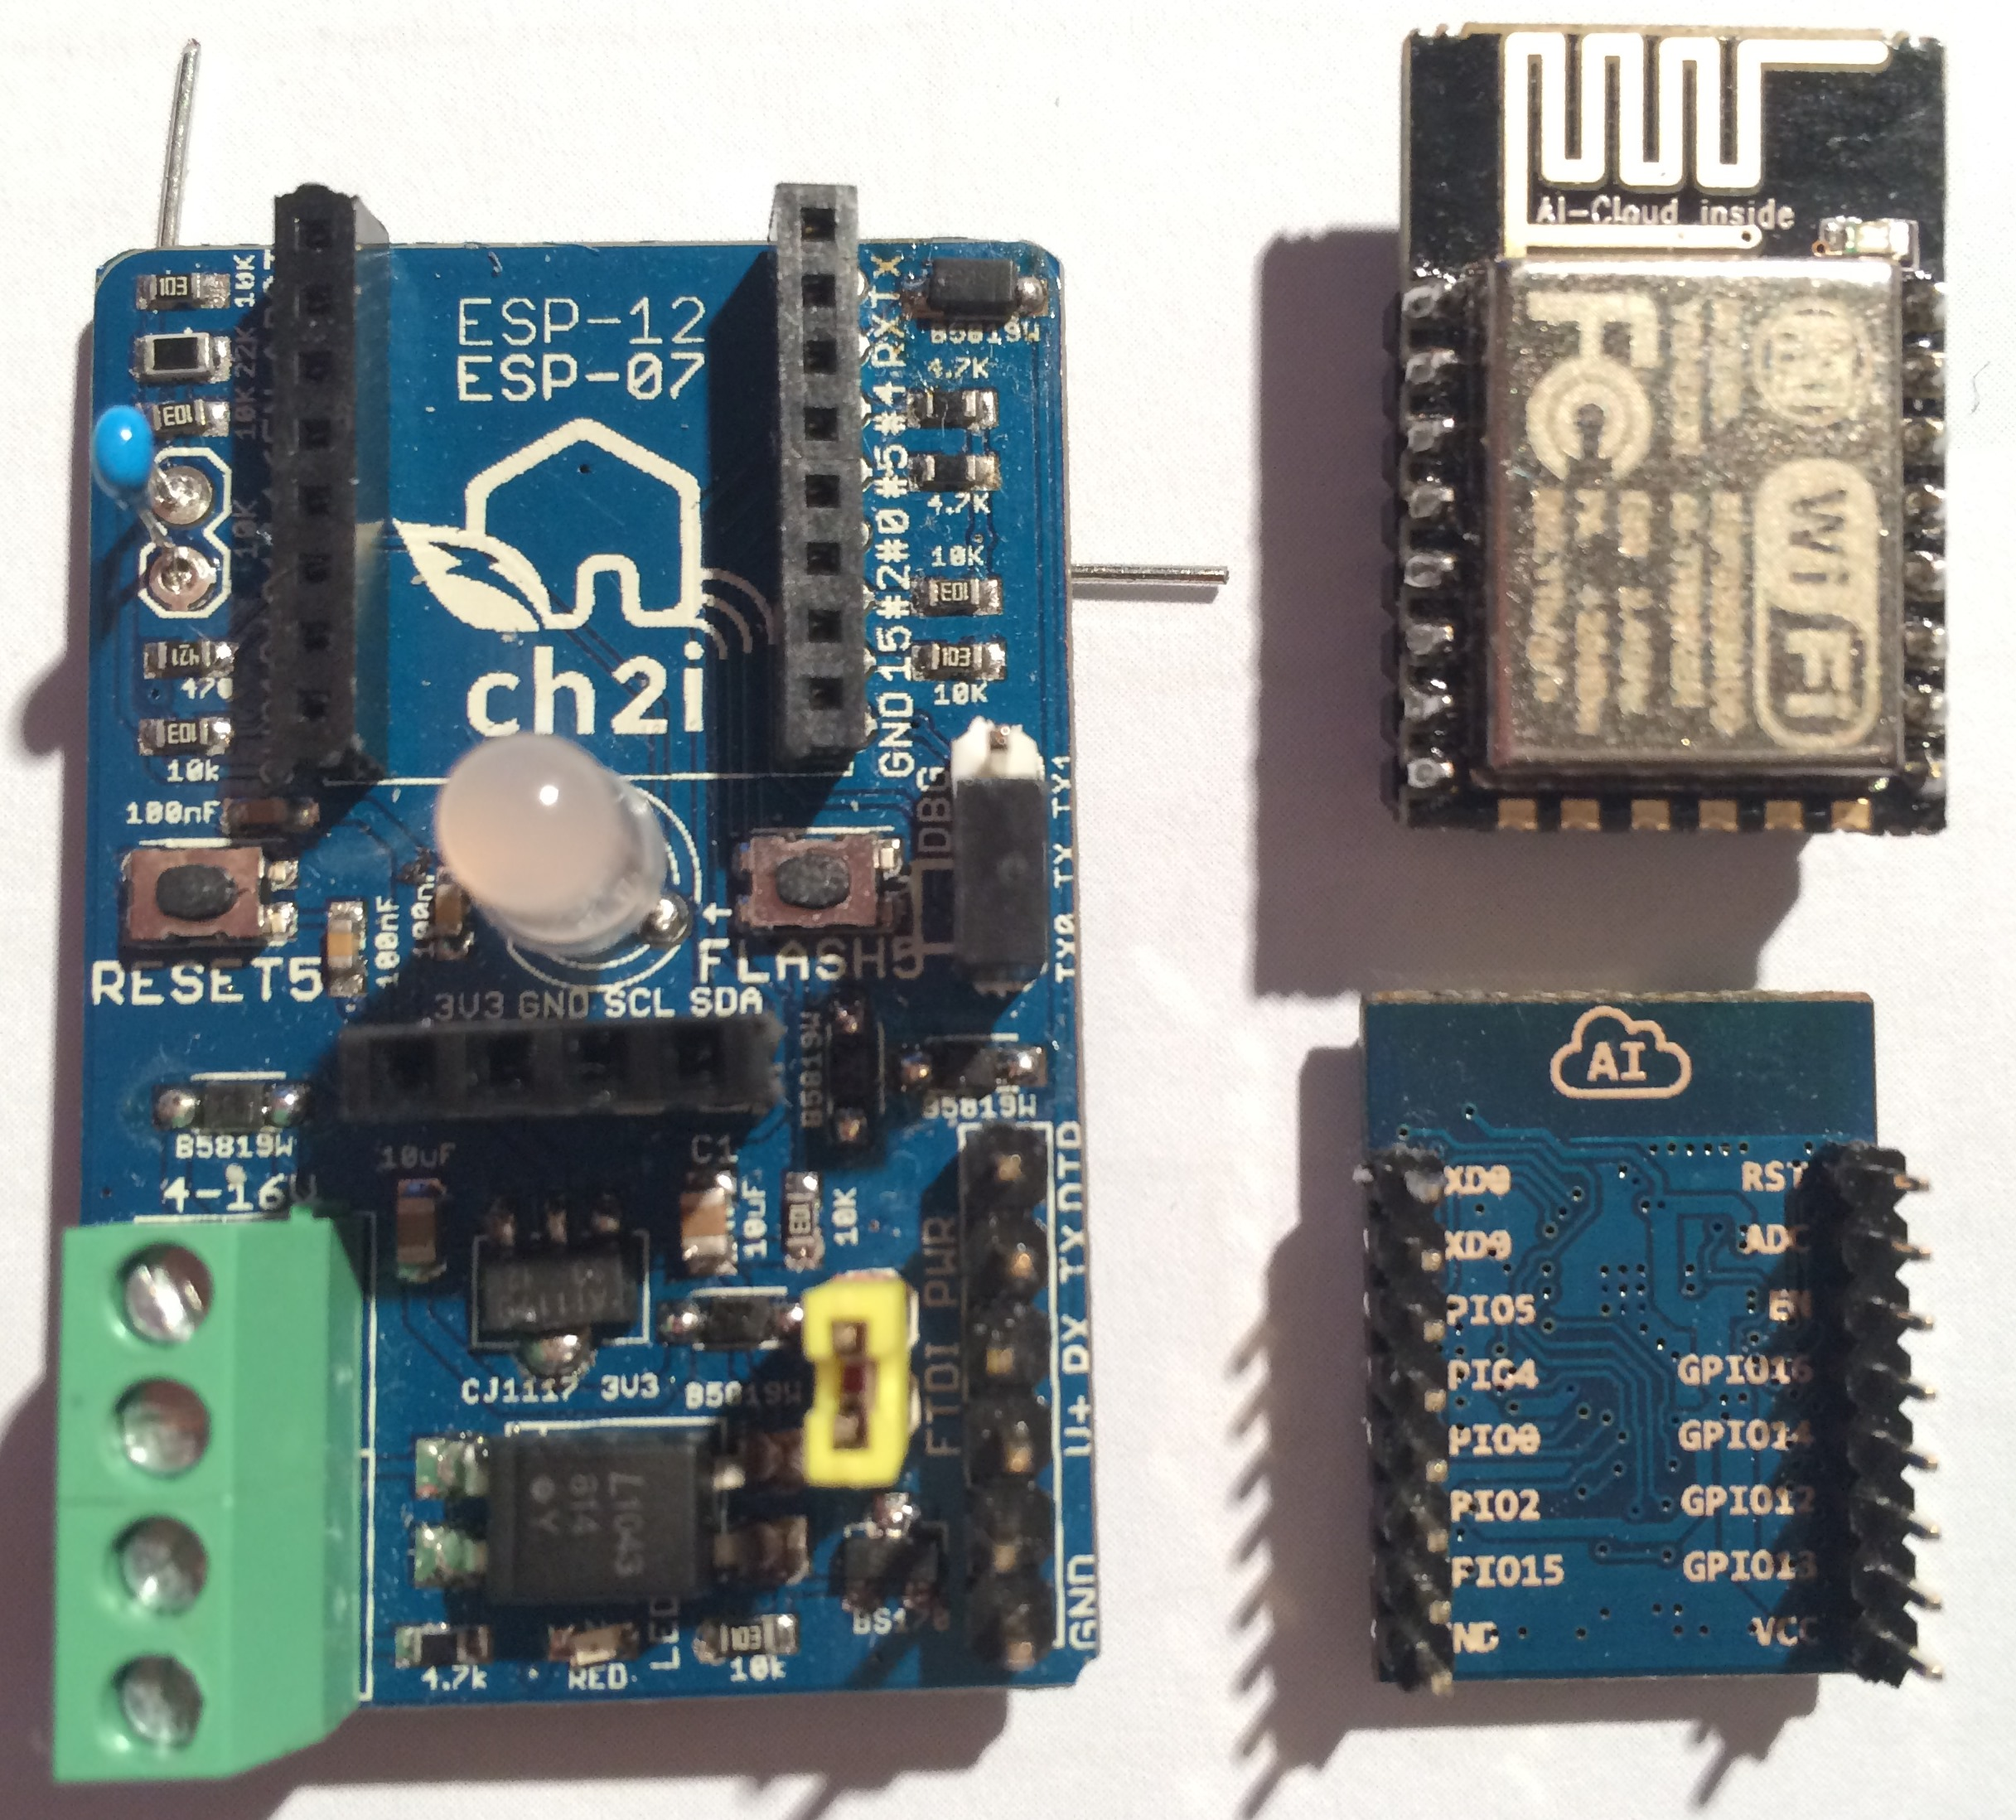 Esp8266 Reset And Ch Pd Pins For Ftdi Auto Charless Blog Sketches To Arduino Uno Chip Using Pl2303 Usb Rs232 Converter Wifinfo With Headers